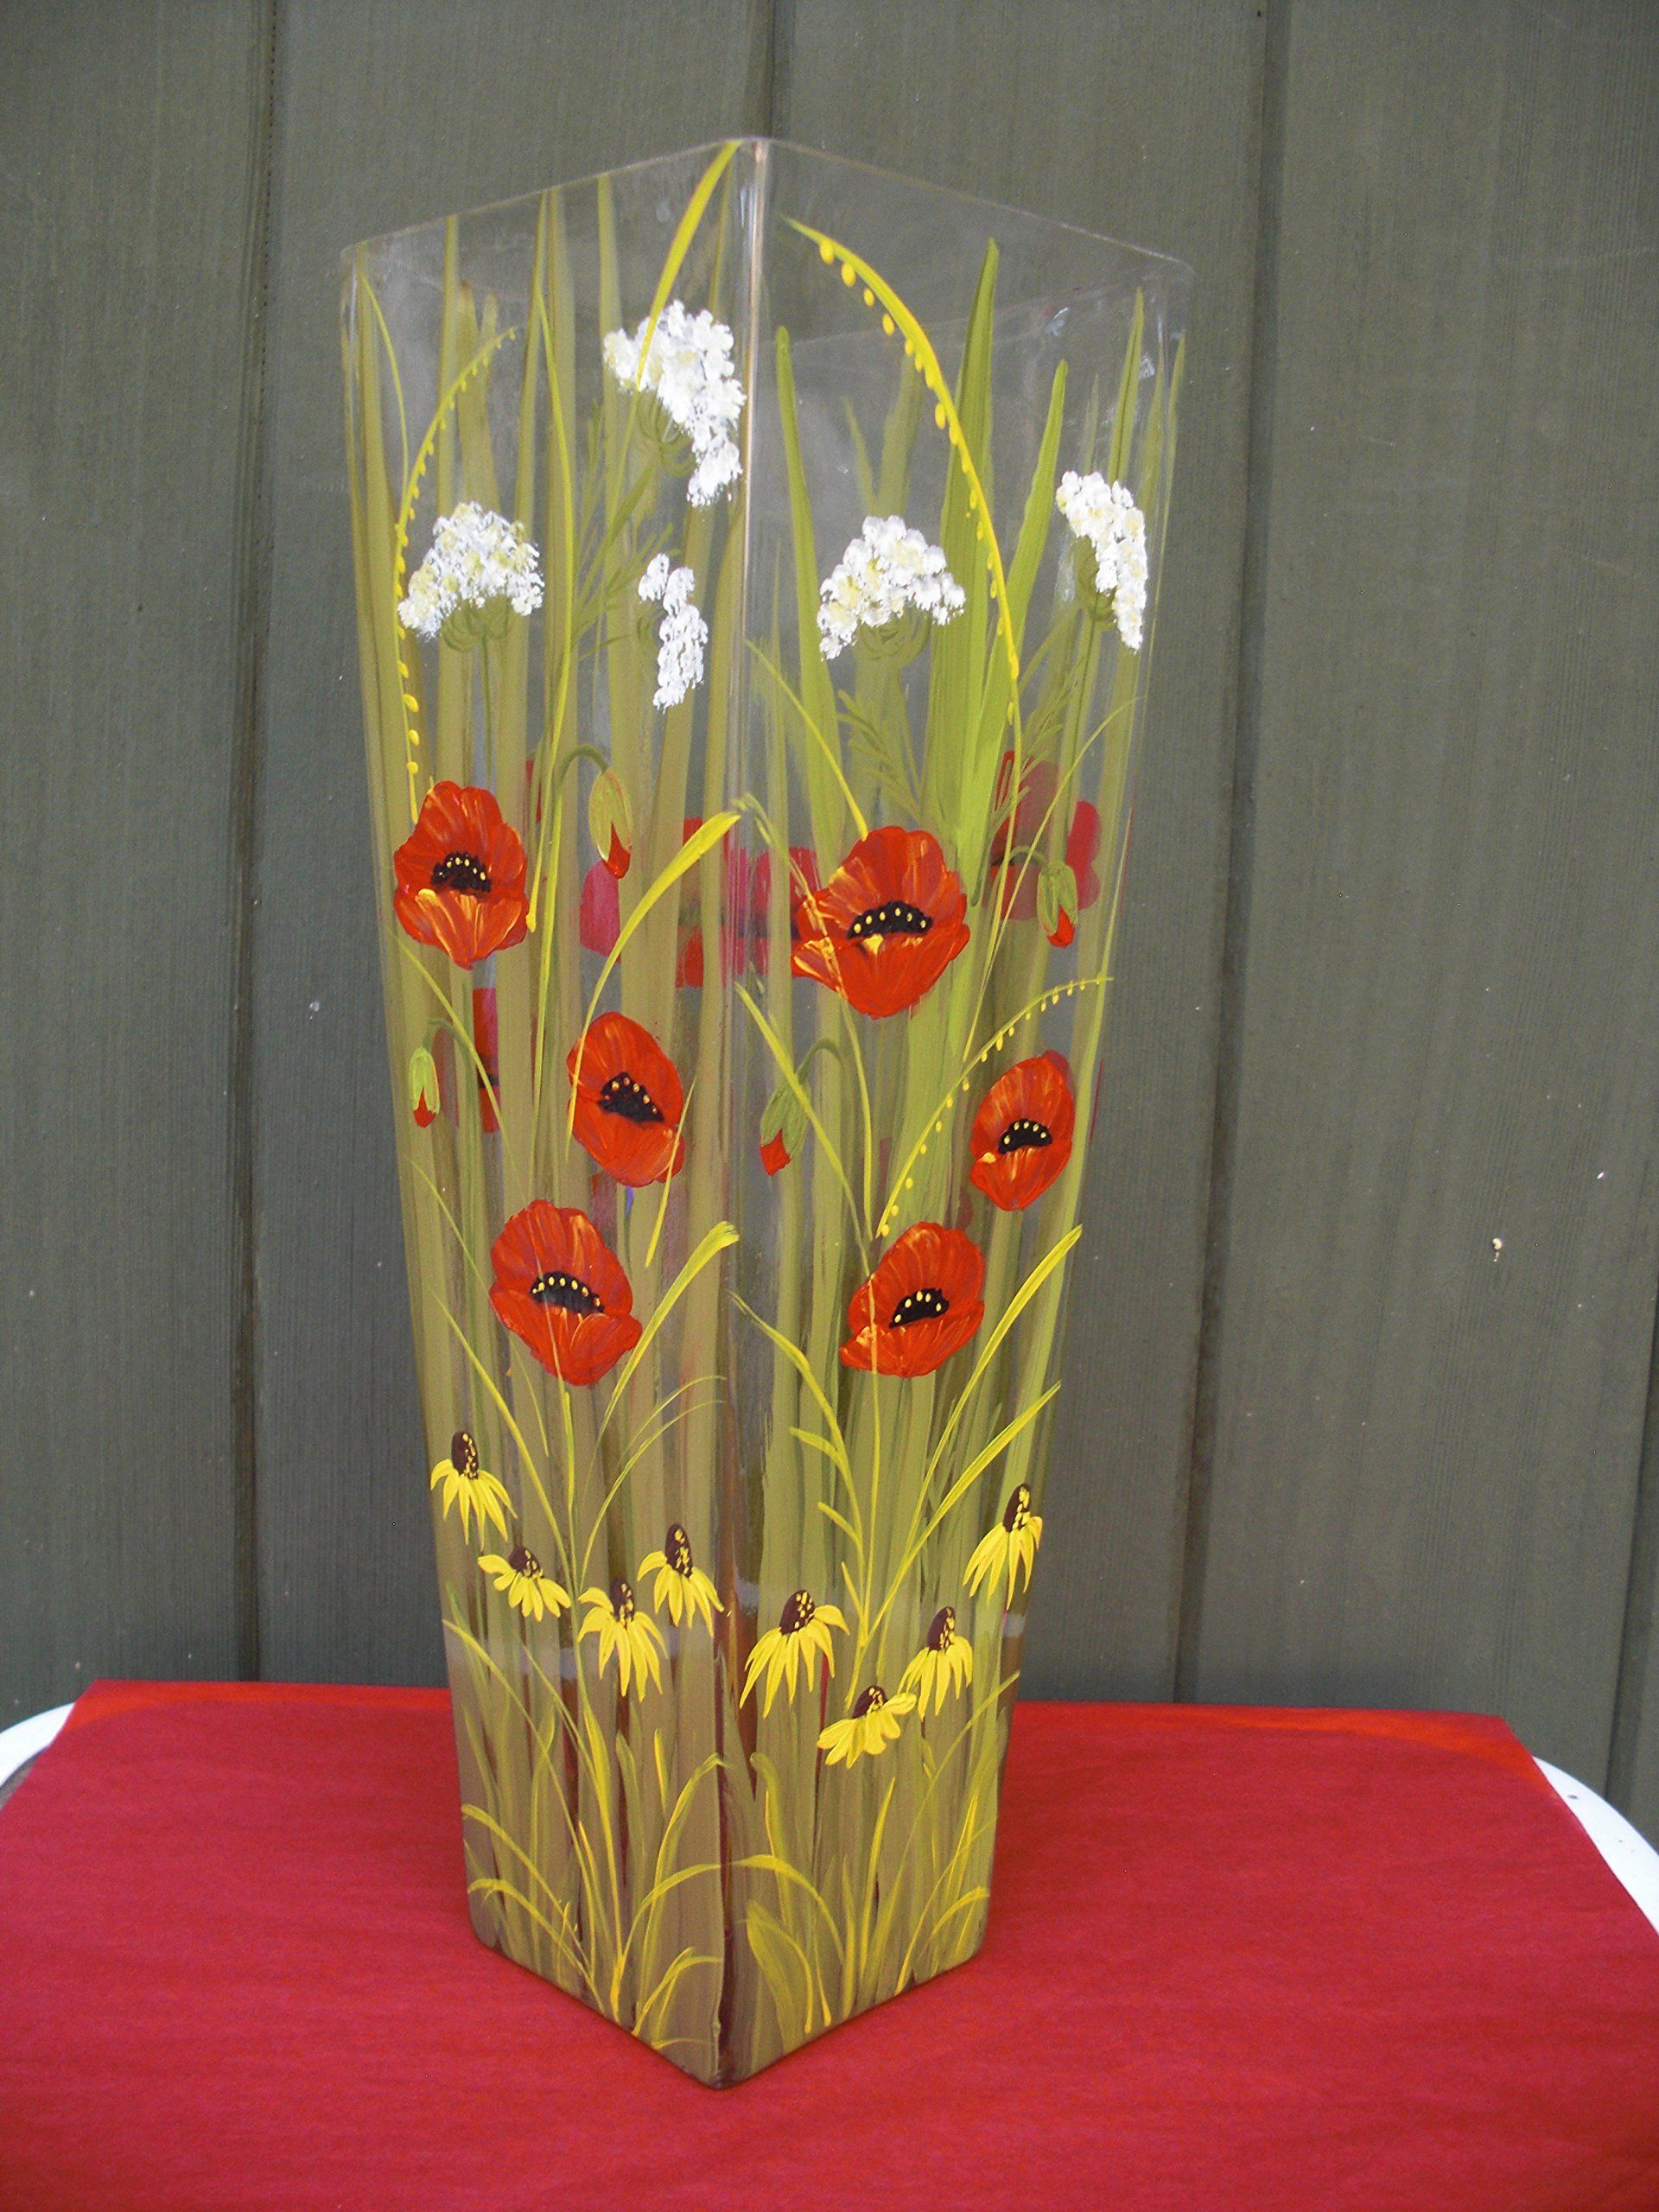 Hand Painted Crystal Vase With Poppies,Daisies And Queen Annes Lace